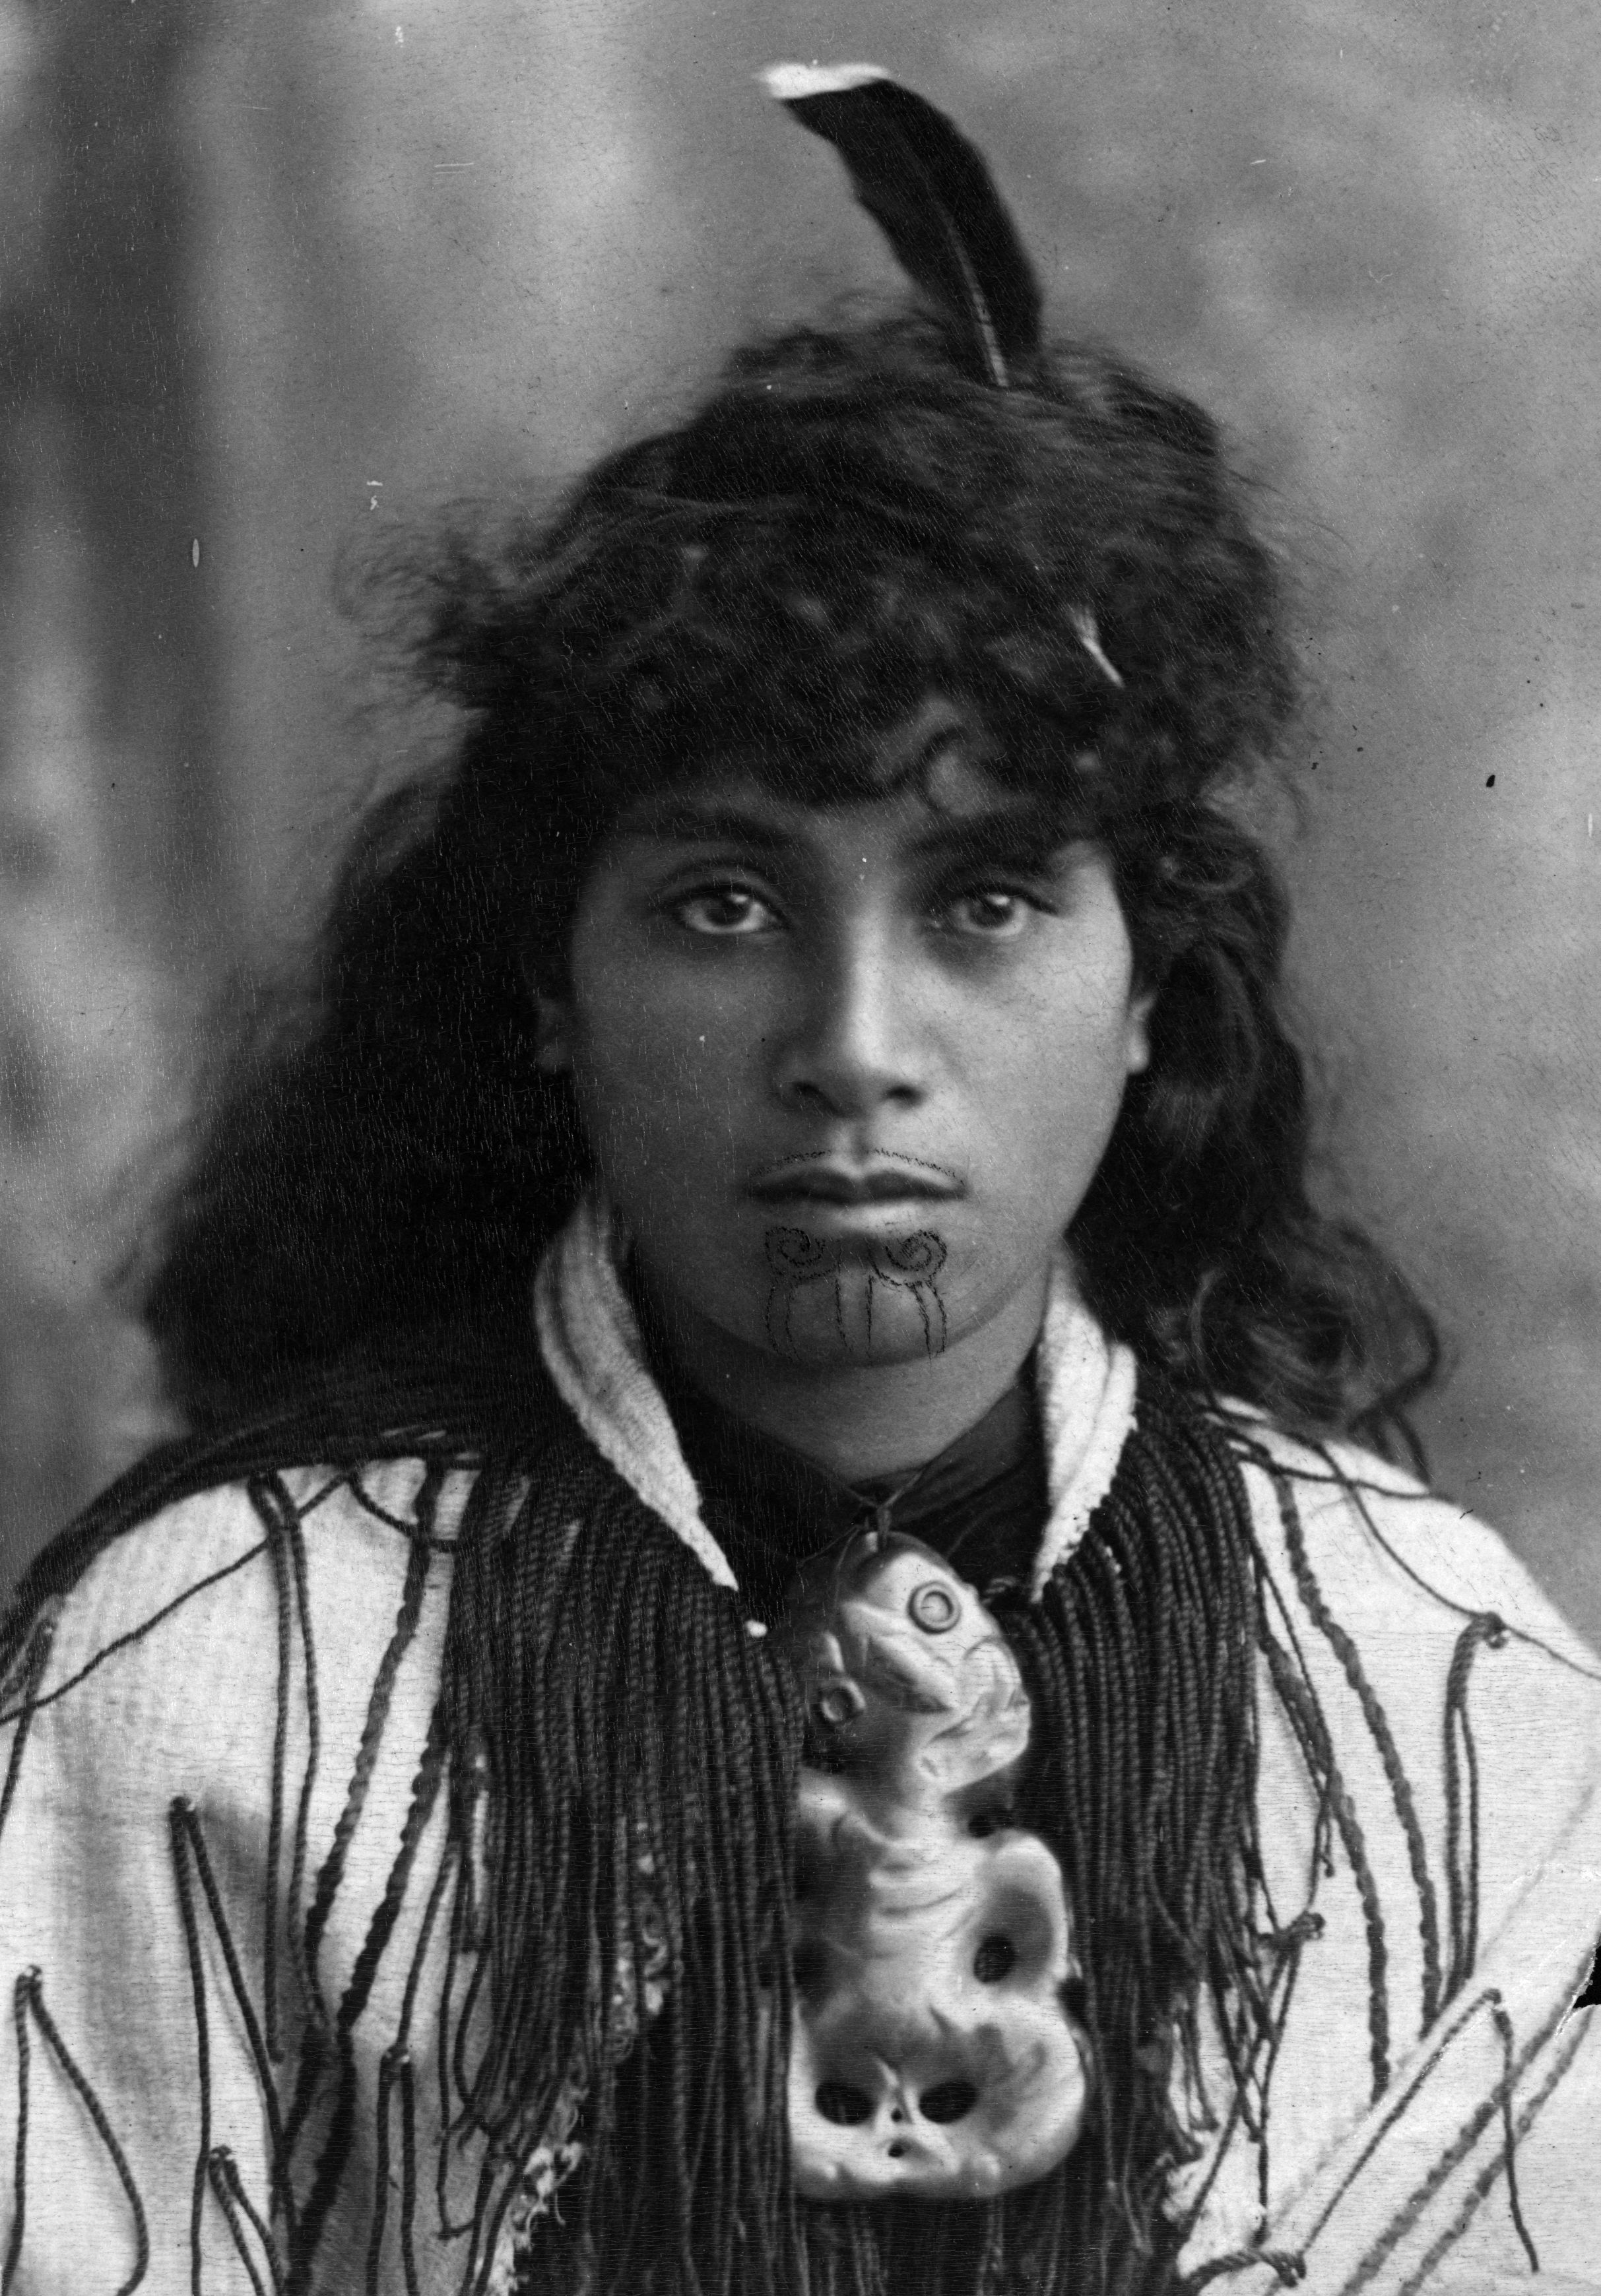 circa 1900:  A Maori woman with a tattooed lip.  (Photo by Hulton Archive/Getty Images)